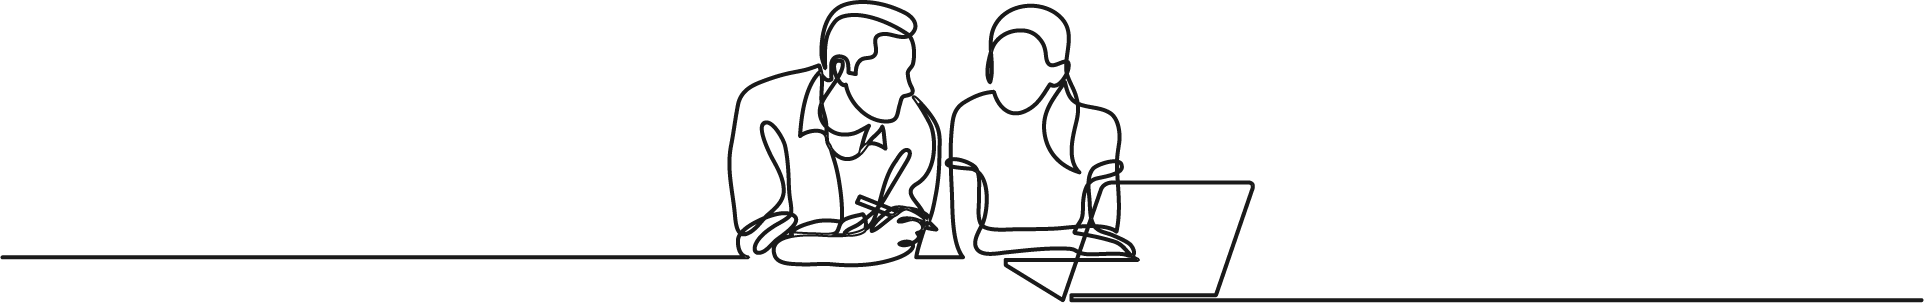 Line drawing of people